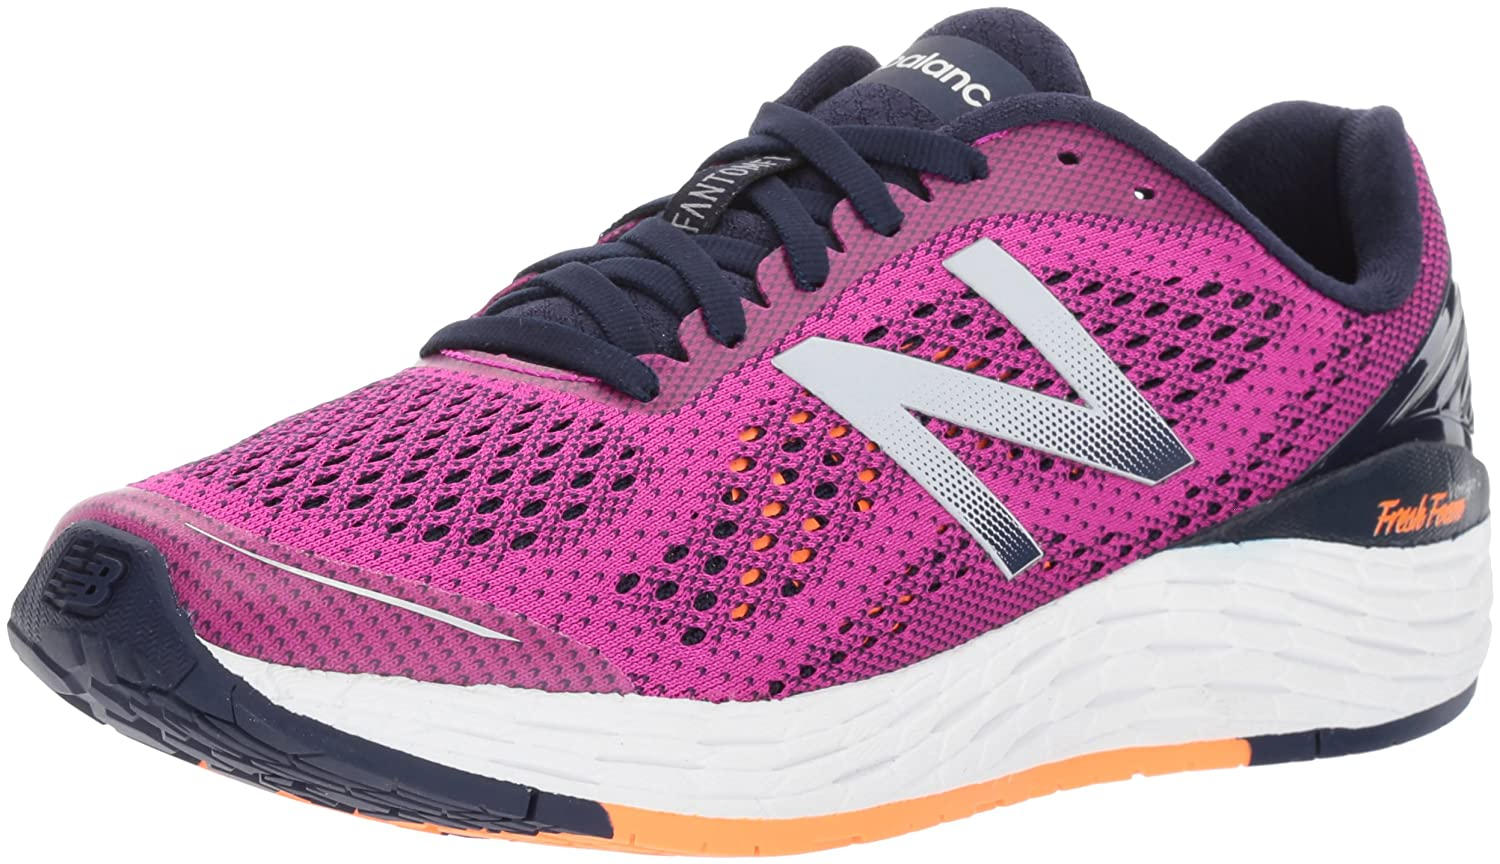 New Balance Women's VONGOV2 Running-Shoes B01NB9QMEV 10 D US|Poisonberry/Vivid Tangerine